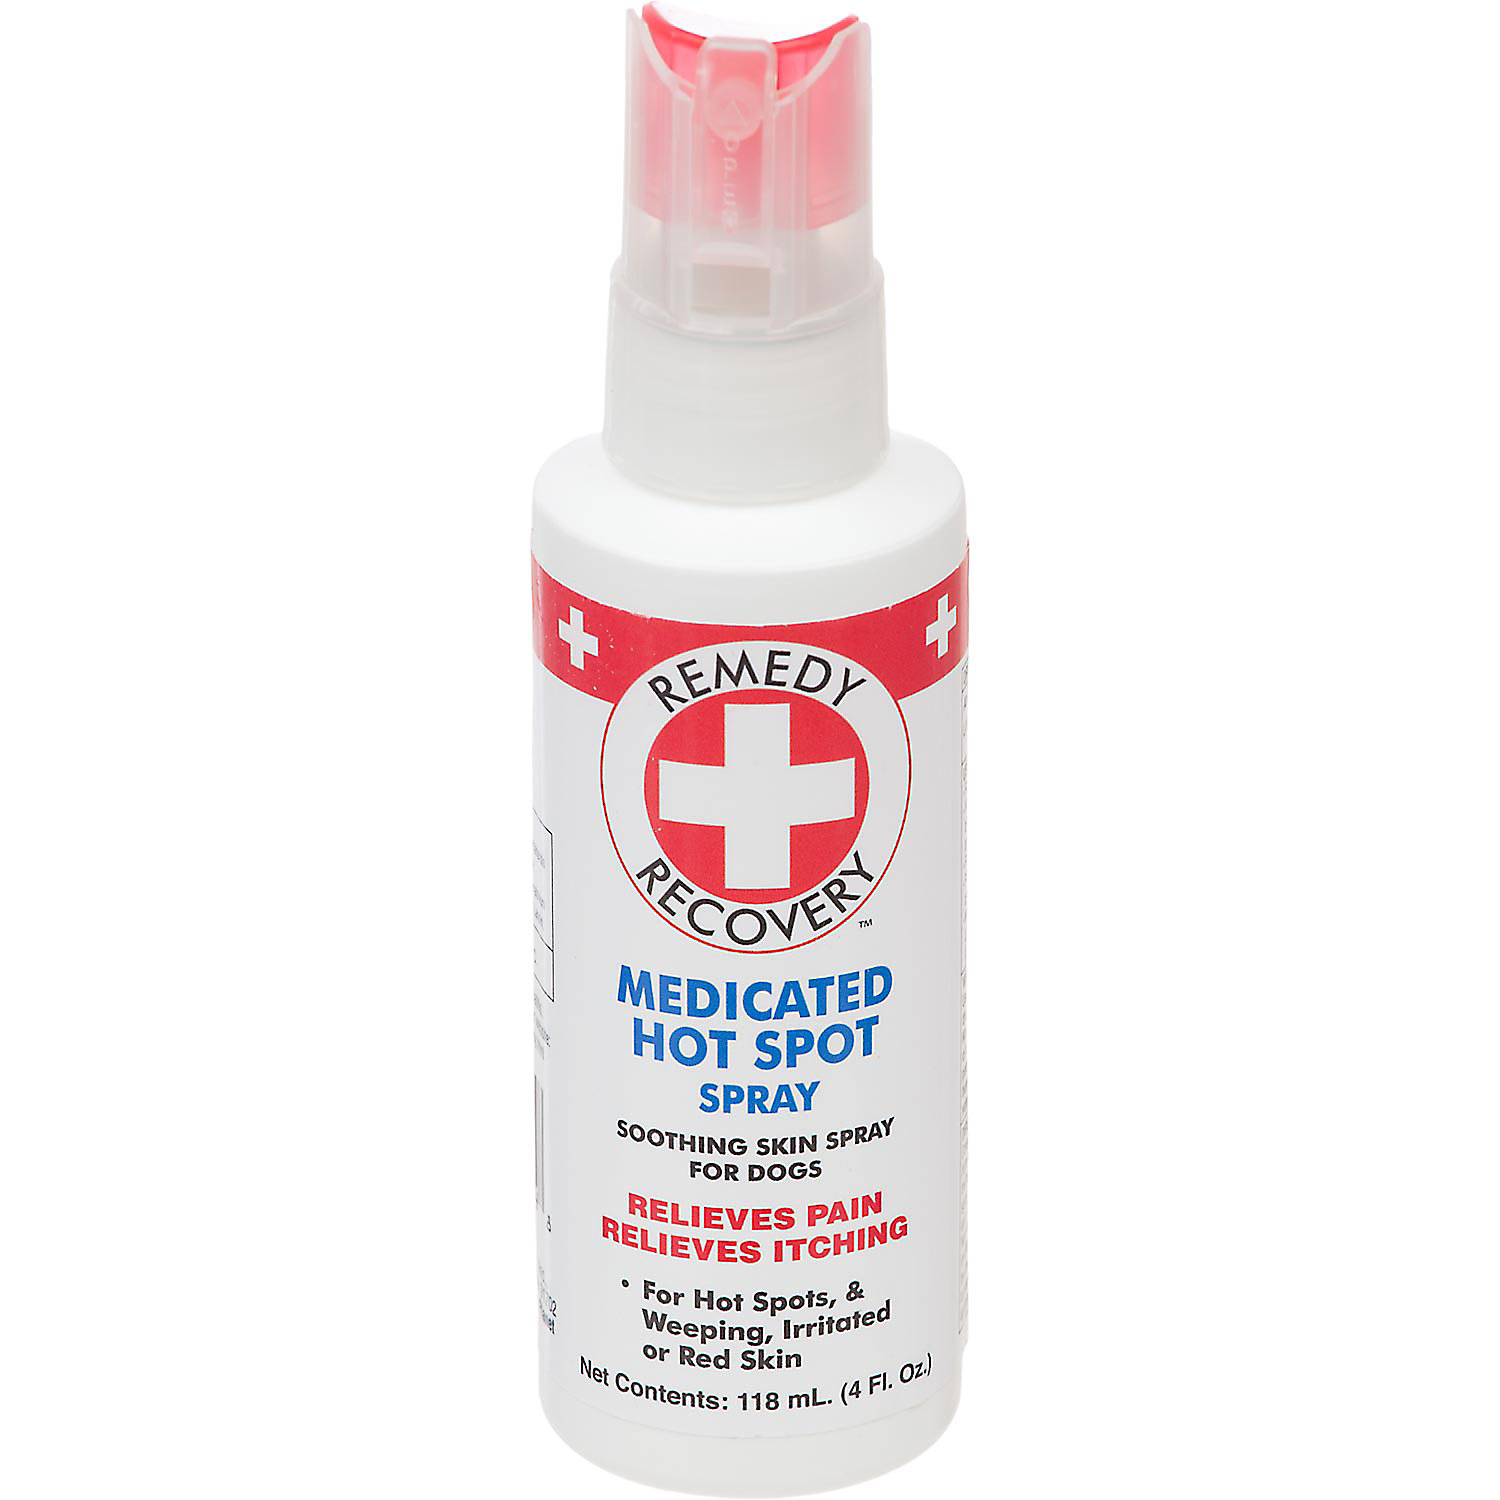 Remedyrecovery Medicated Hot Spot Spray For Dogs